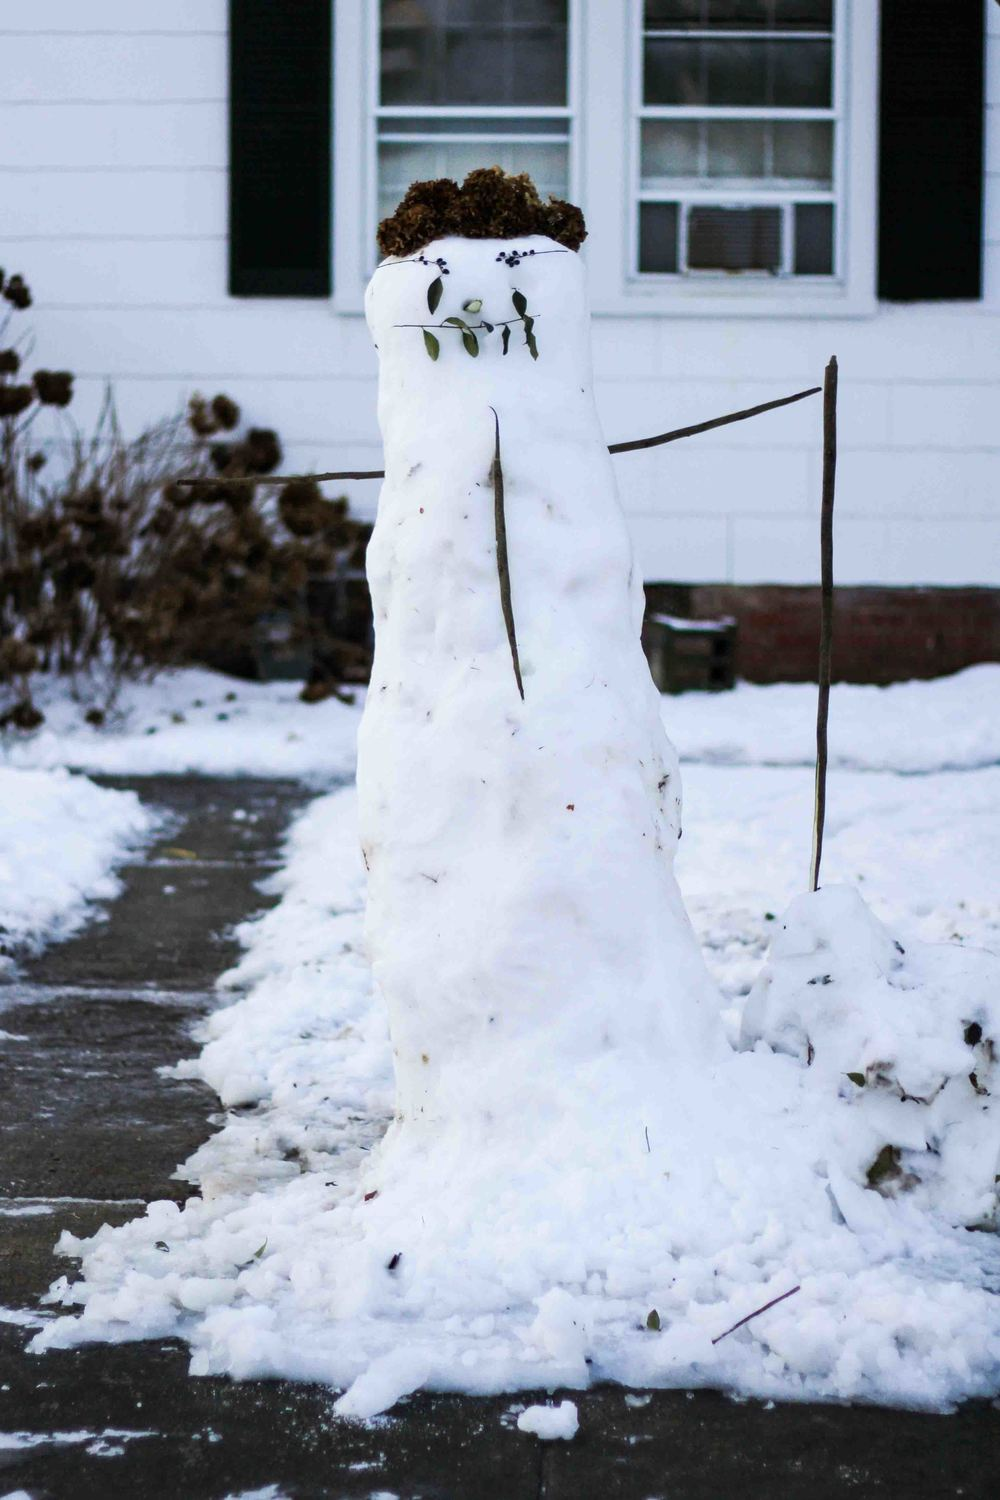 My next door neighbor, Andy, and his girlfriend made a handsome snowman. Btw, check out Andy's food truck, Popping Mealies.